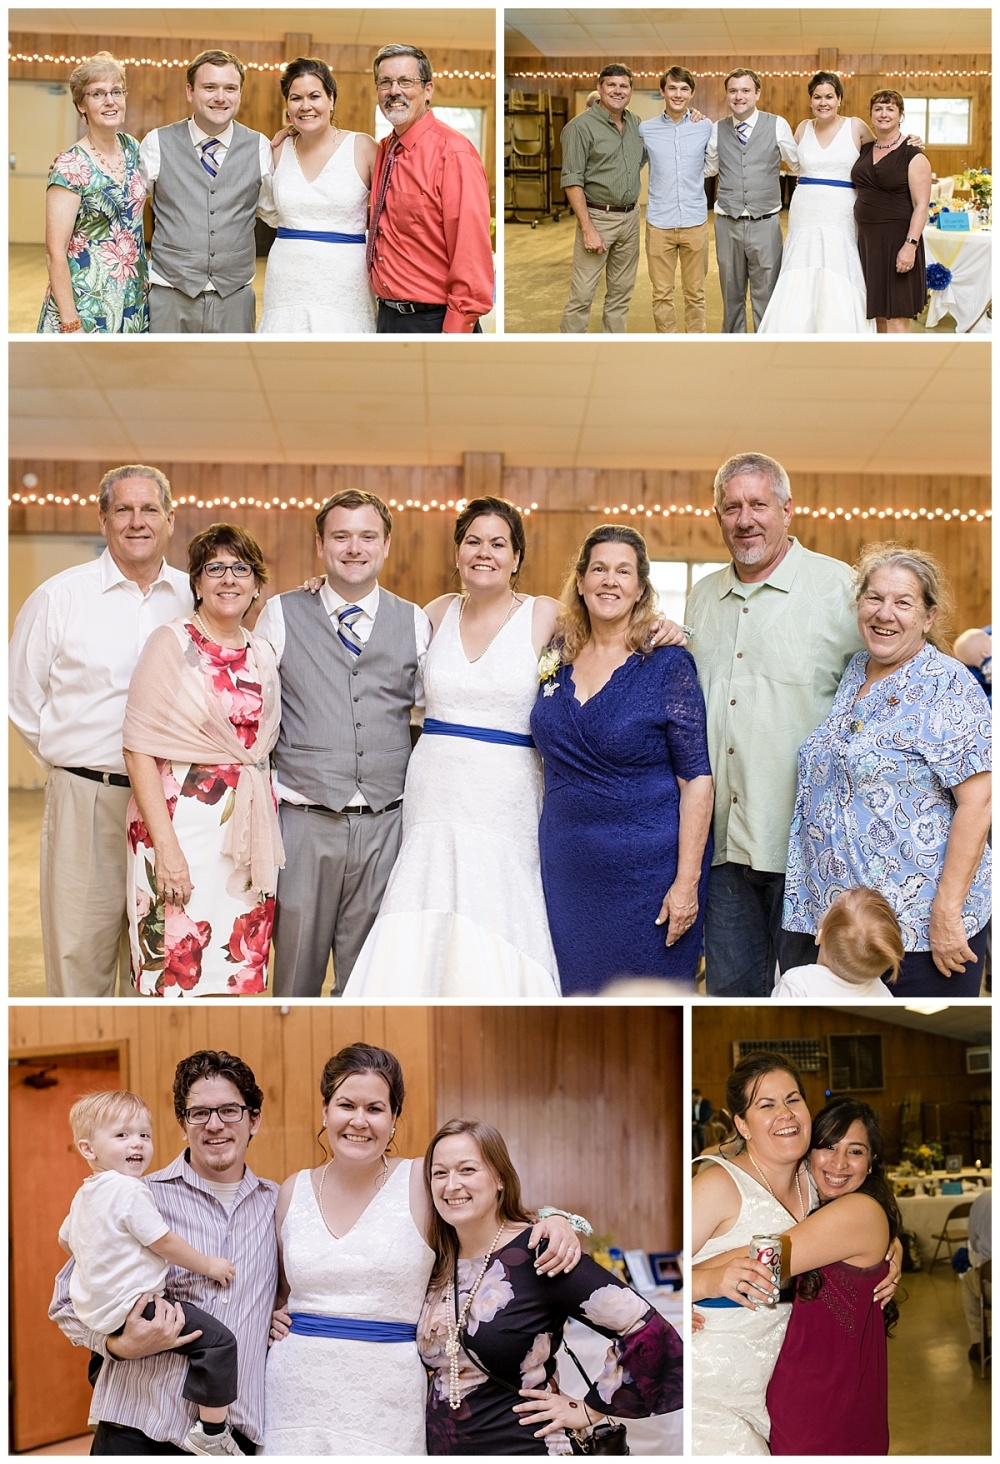 Texas-Wedding-Photographer-La-Coste-Our-Lady-Of-Grace-Church-Bride-Groom-Lego-Theme-Carly-Barton-Photography_0095.jpg